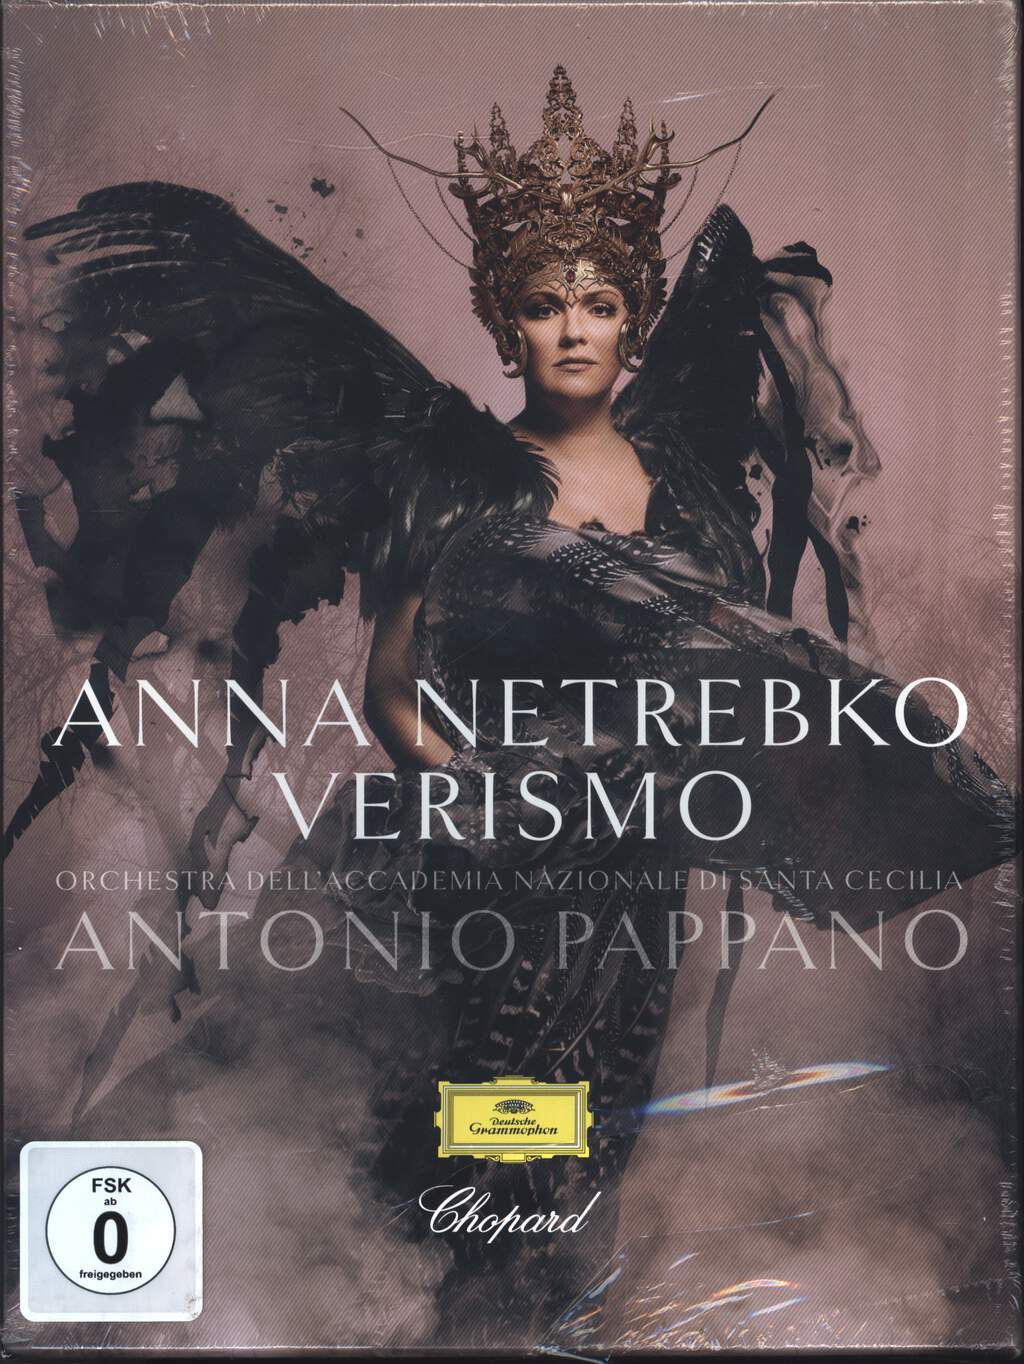 Anna Netrebko: Verismo - Chopard-Super-Deluxe-Edition, CD